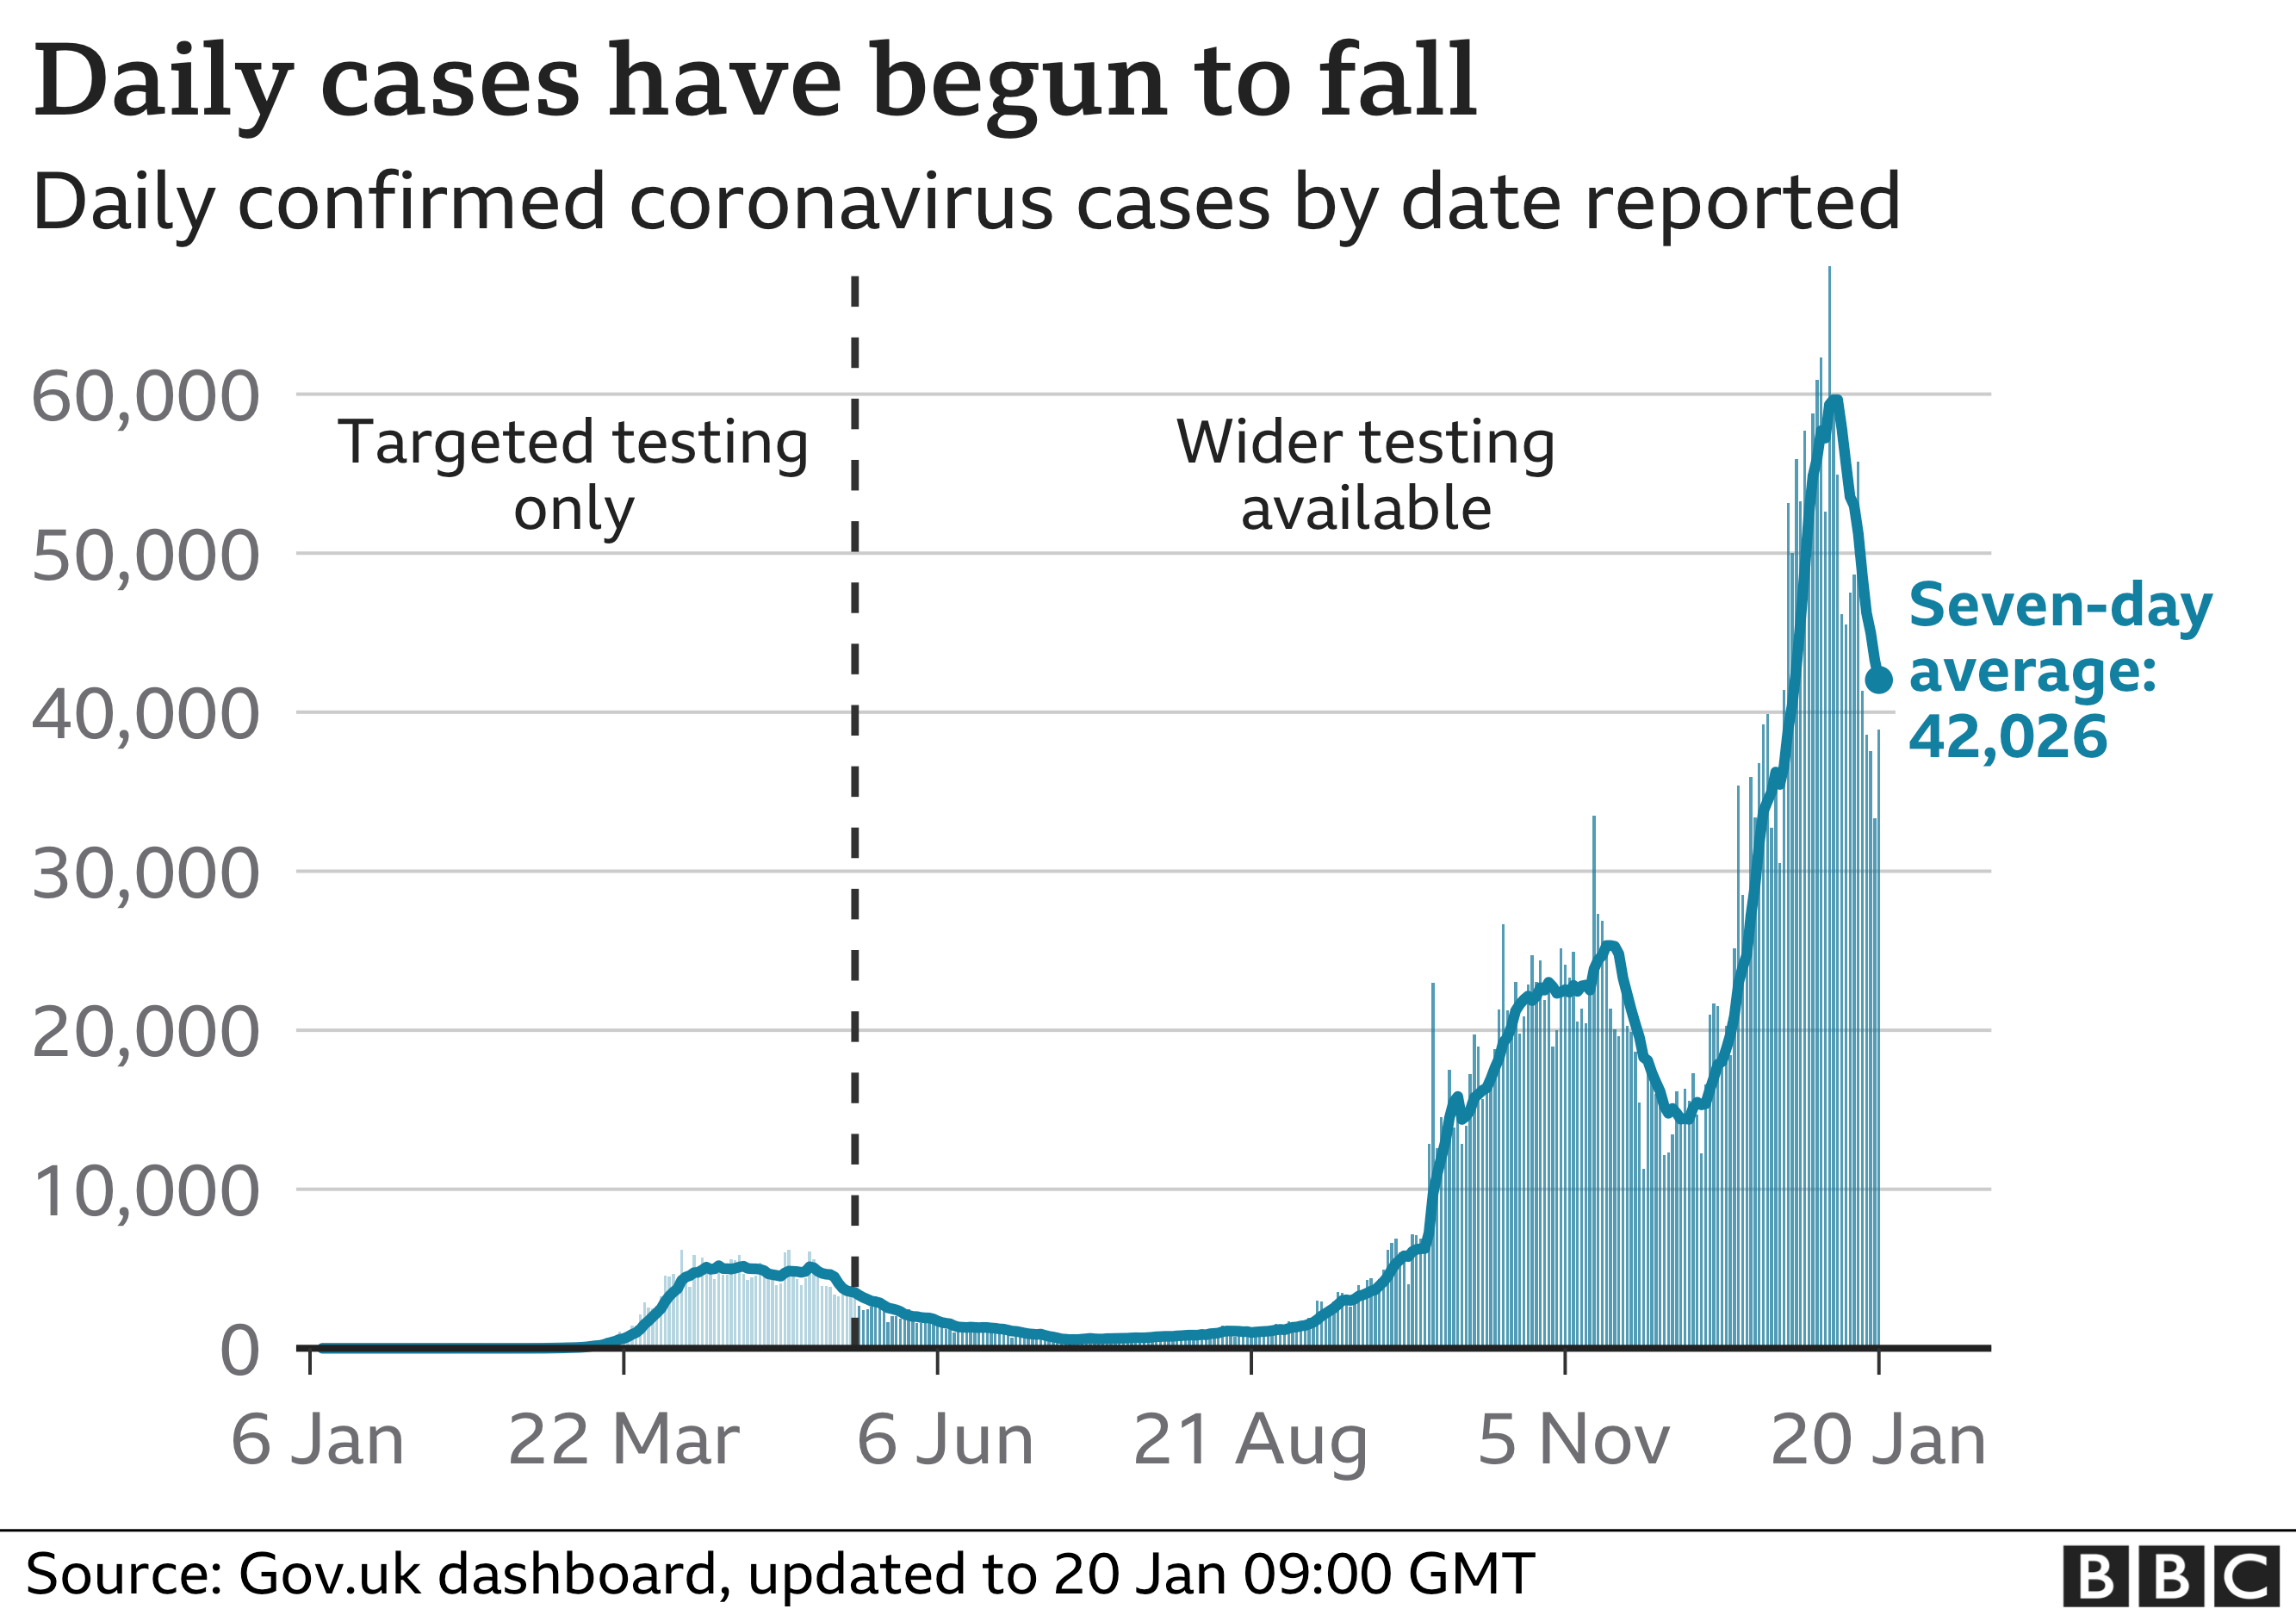 Chart shows daily confirmed cases have begun falling